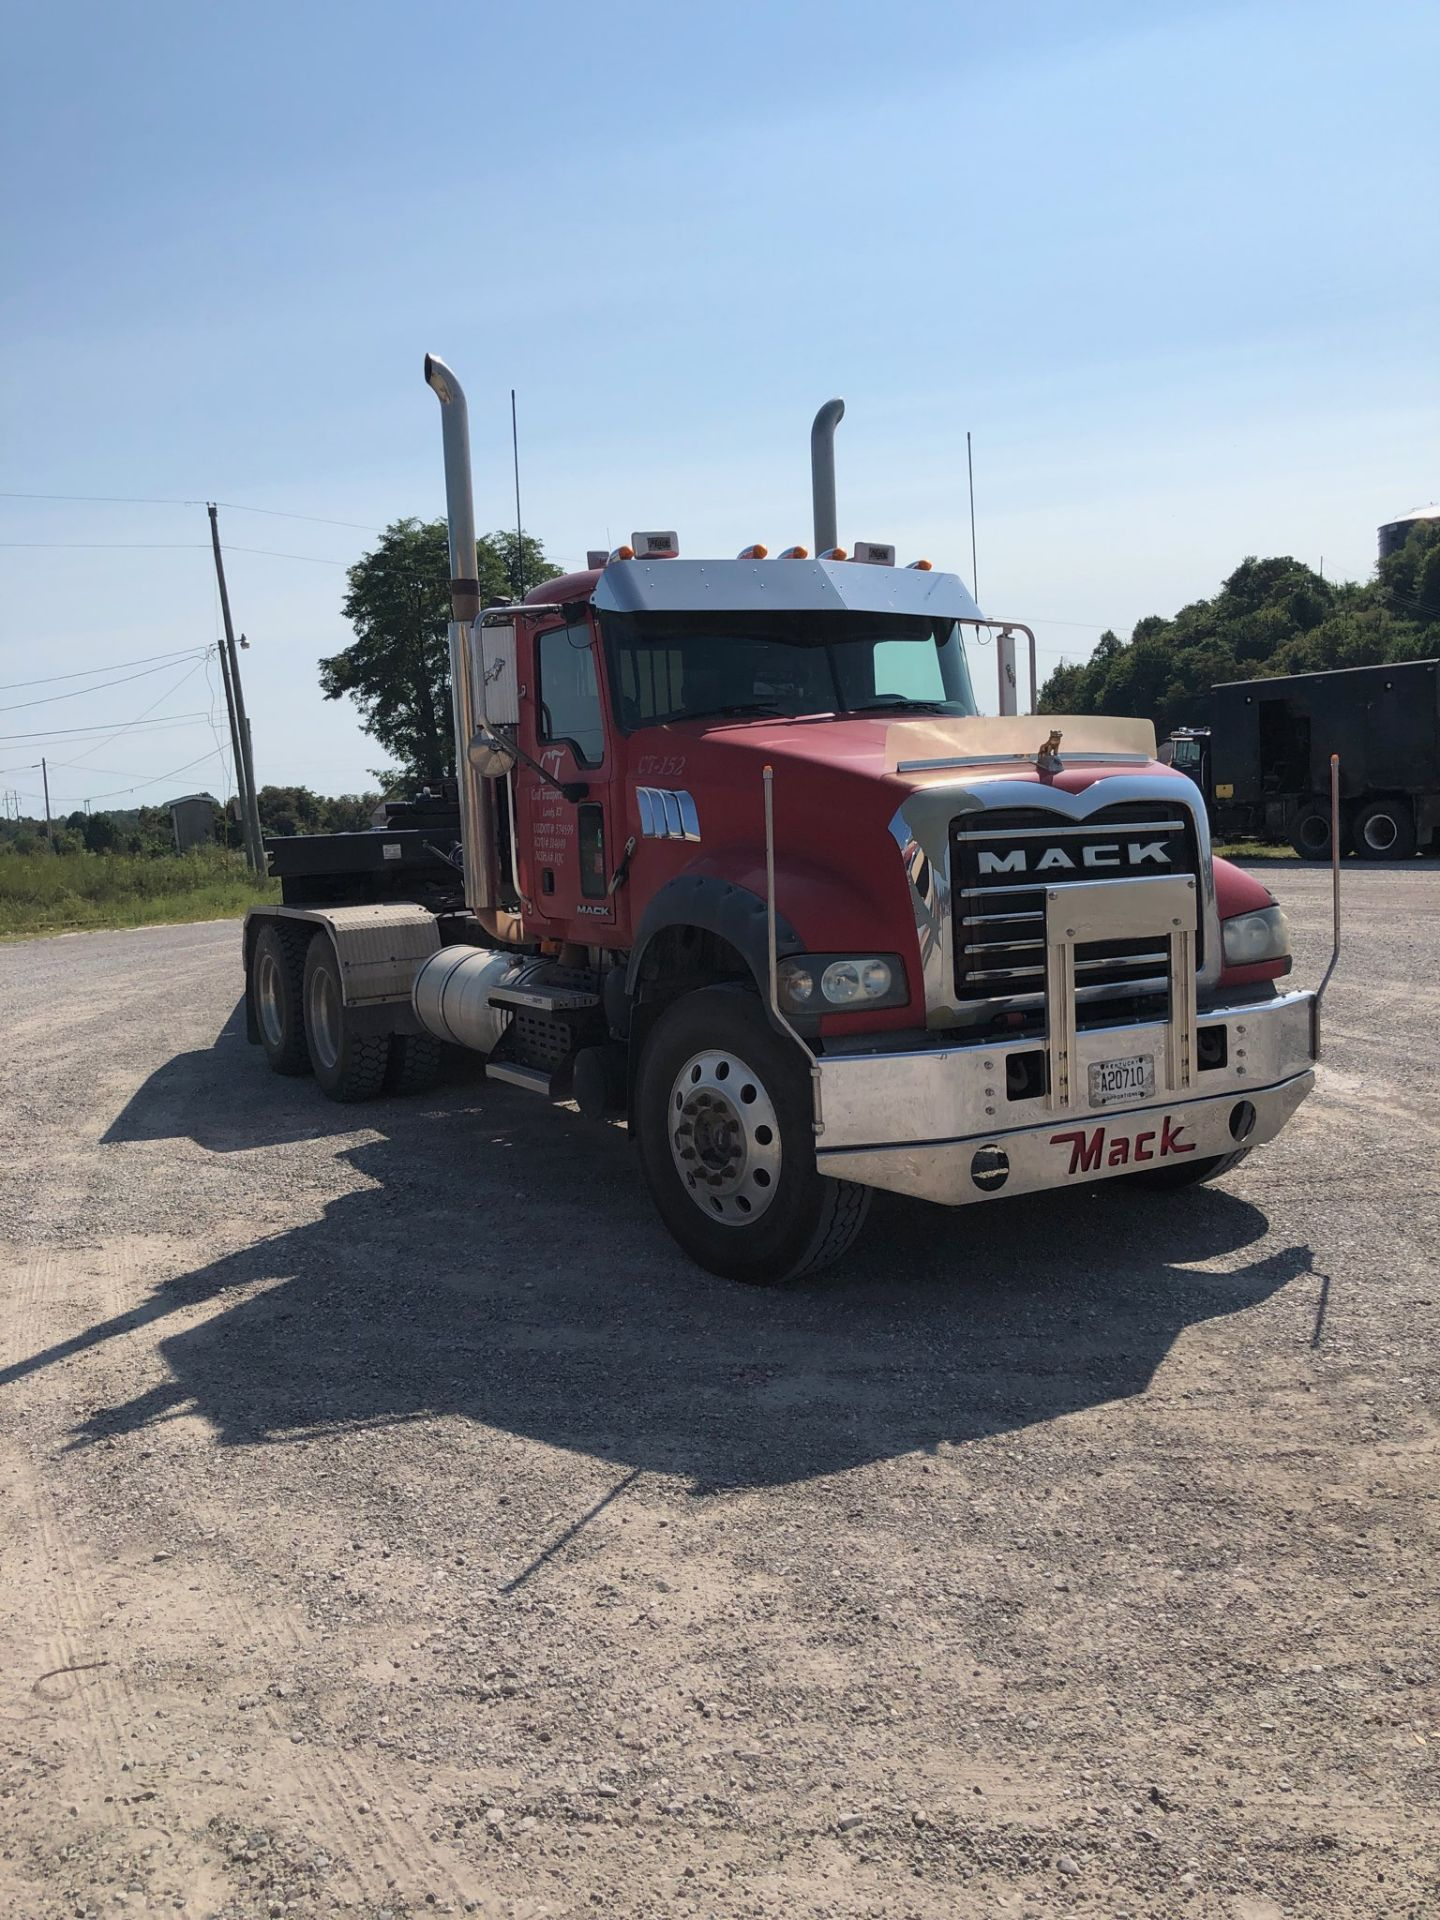 Lot 1 - 2008 MACK GU713 T/A DAY CAB TRACTOR, MAXITORQUE 18 SPEED TRANS., WET LINES INLINE SIX MACK DIESEL